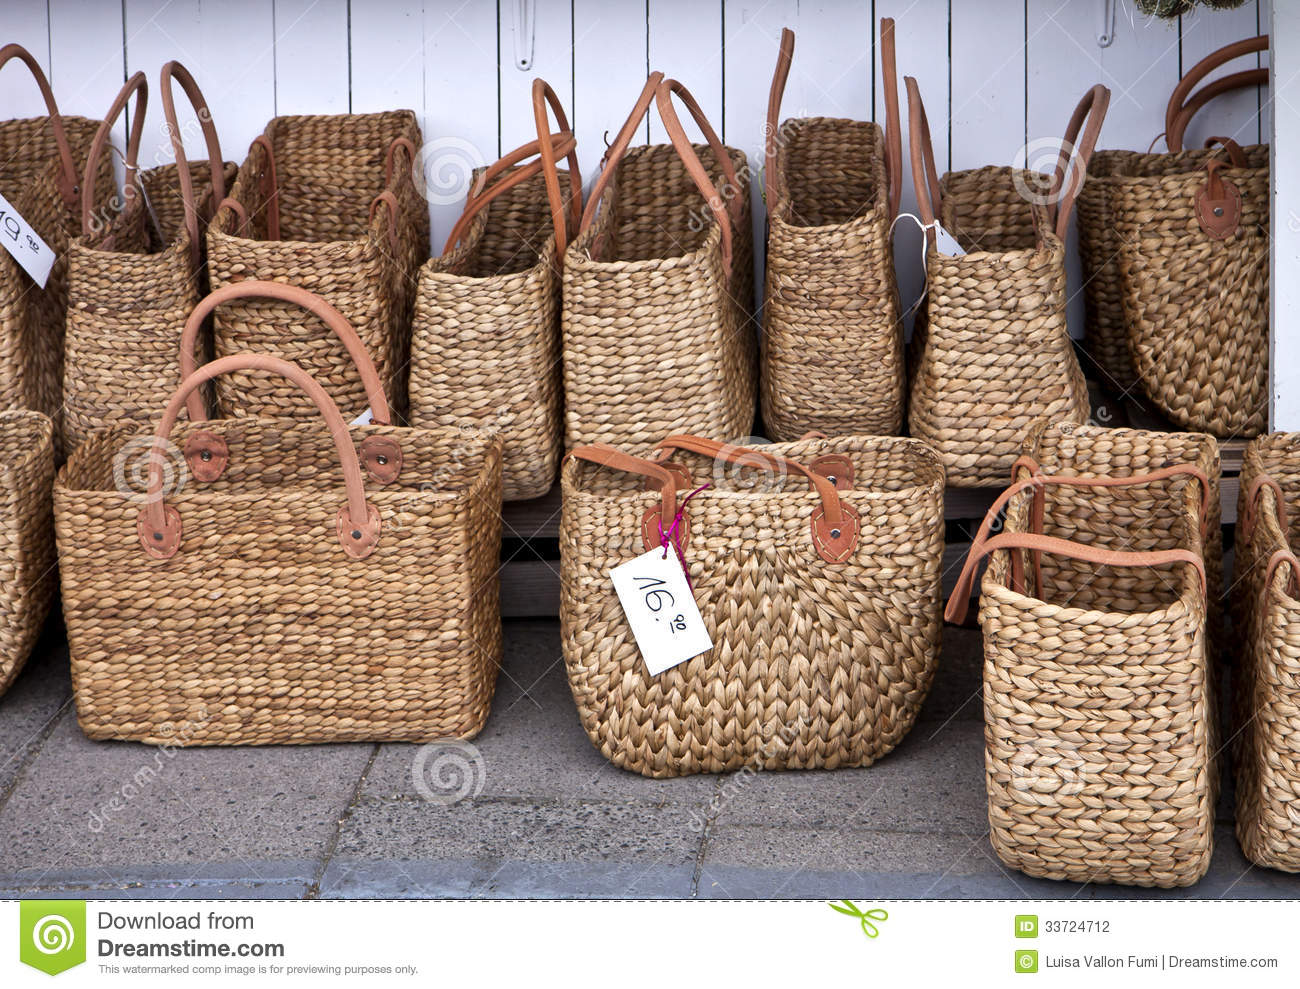 Fashionable Straw Shopping Bags At Market Stock Photo - Image of ... 30eff221b75f2